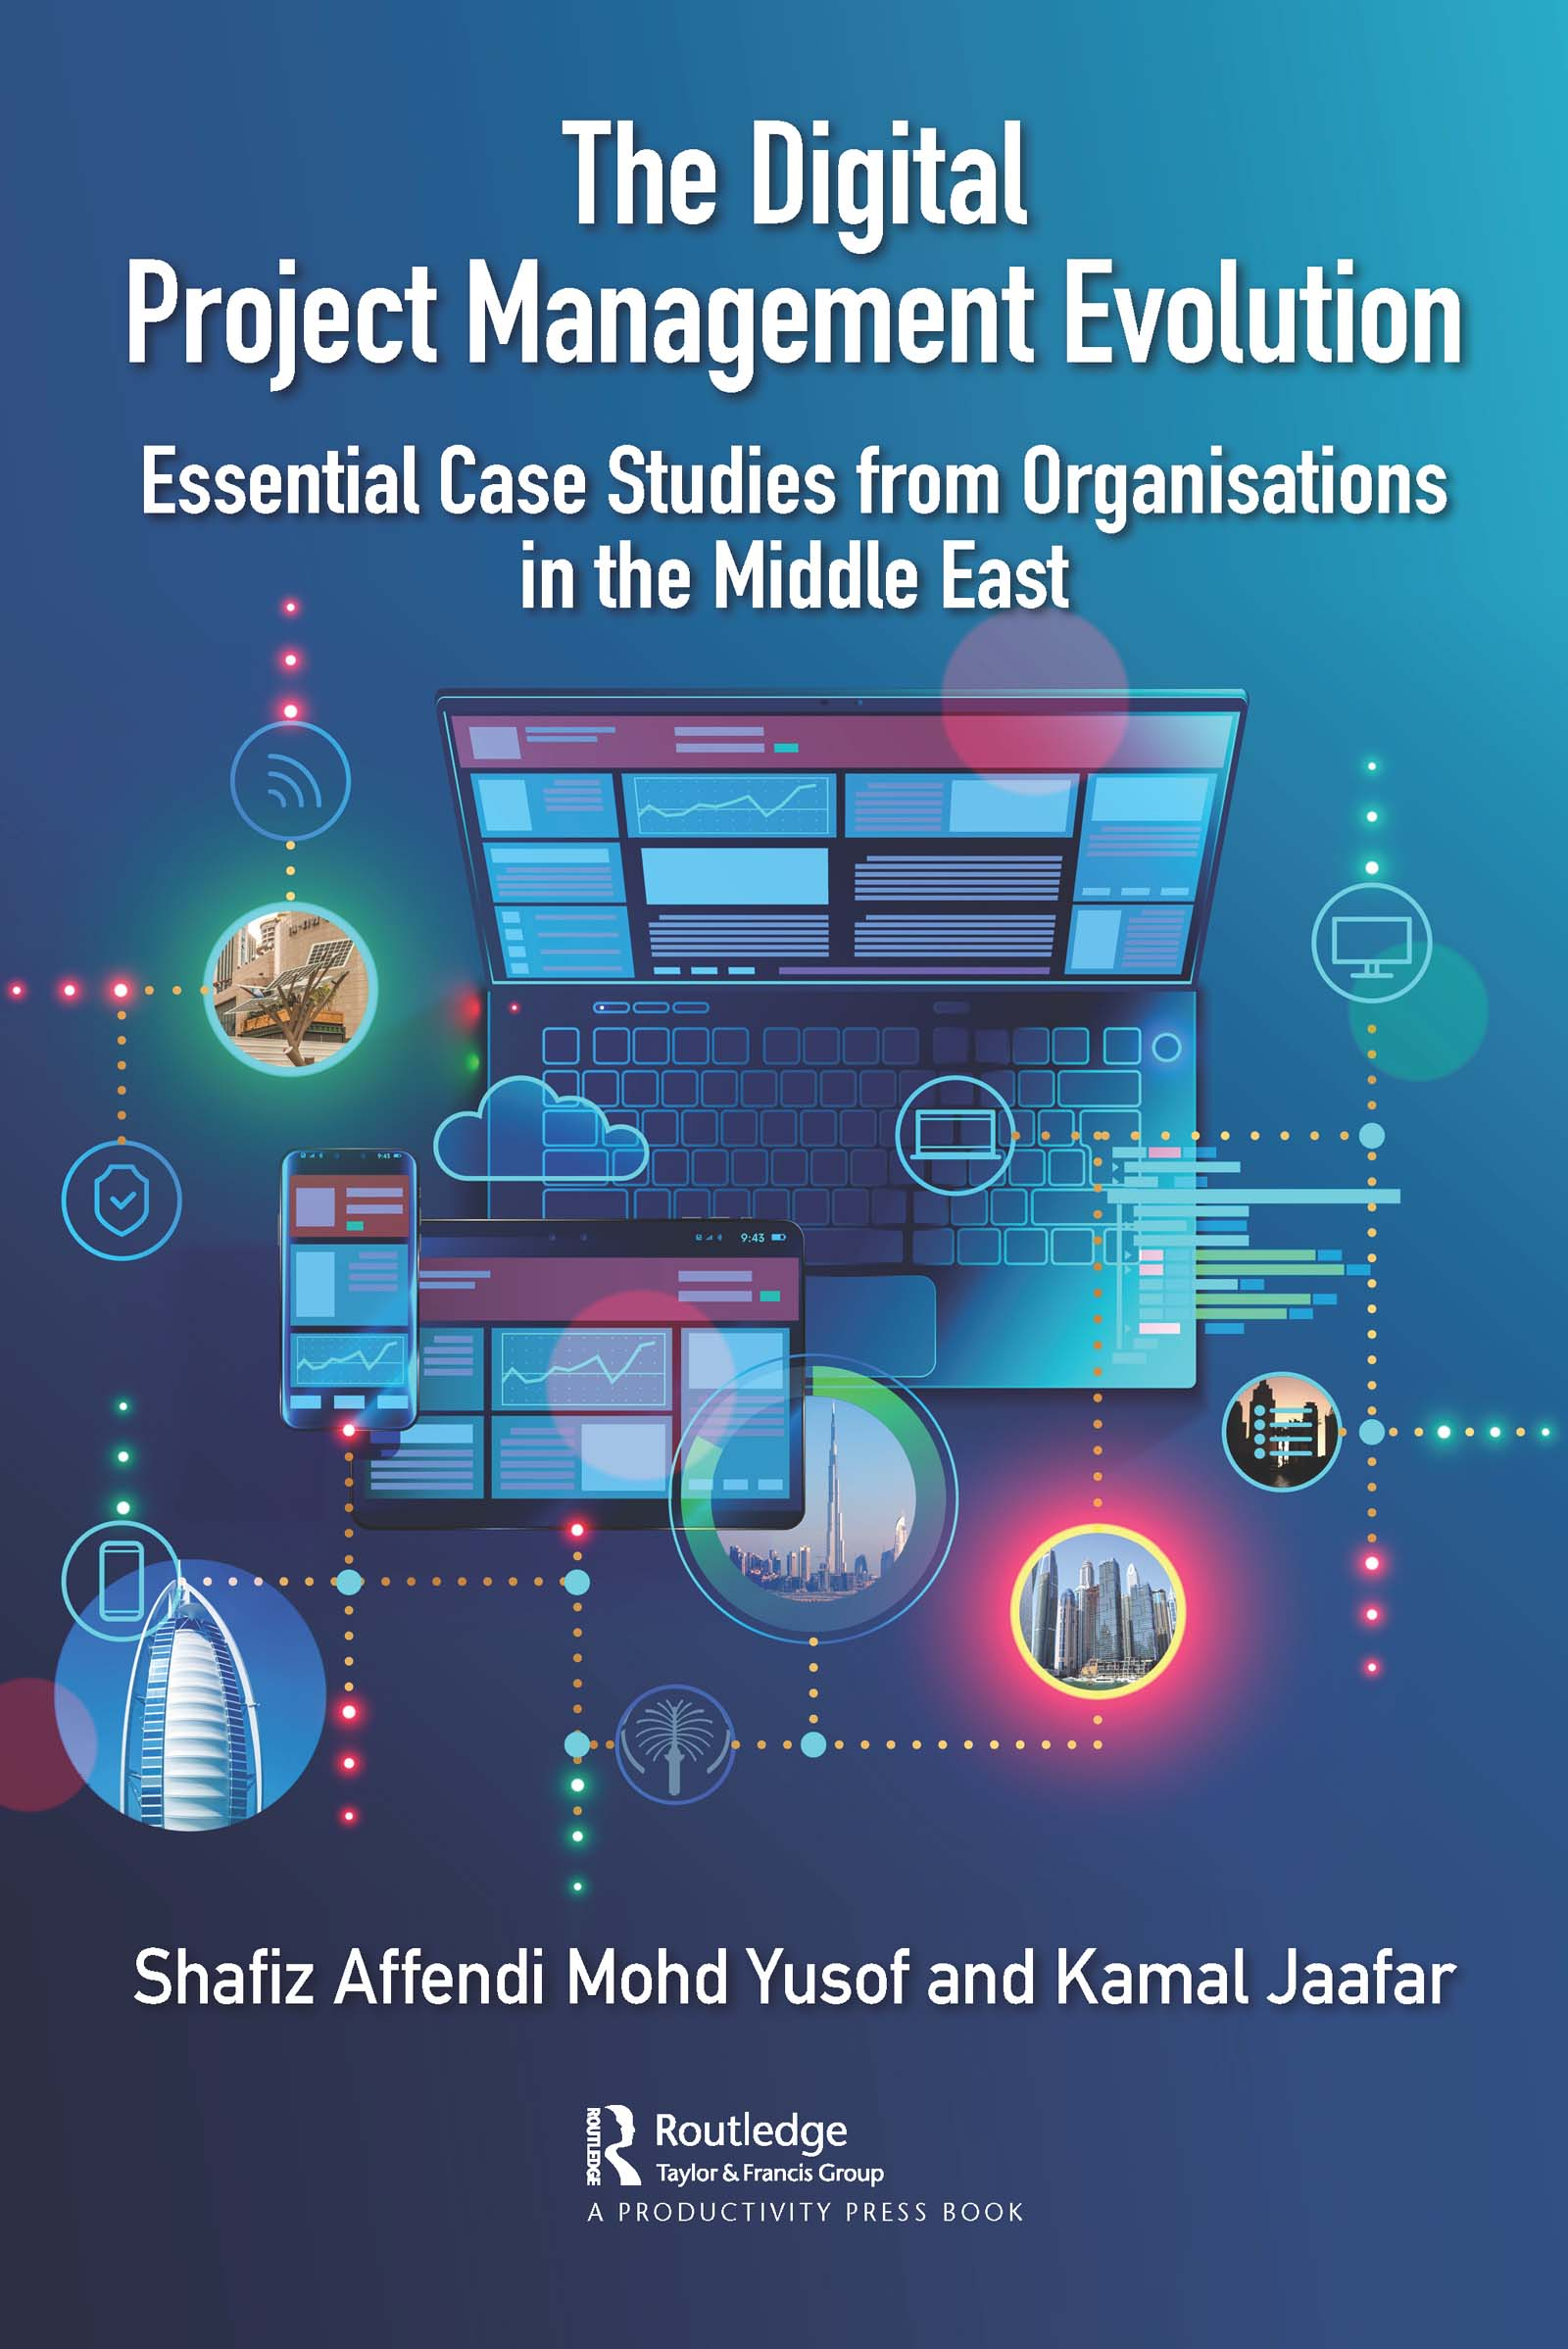 The Digital Project Management Evolution: Essential Case Studies from Organizations in the Middle East book cover